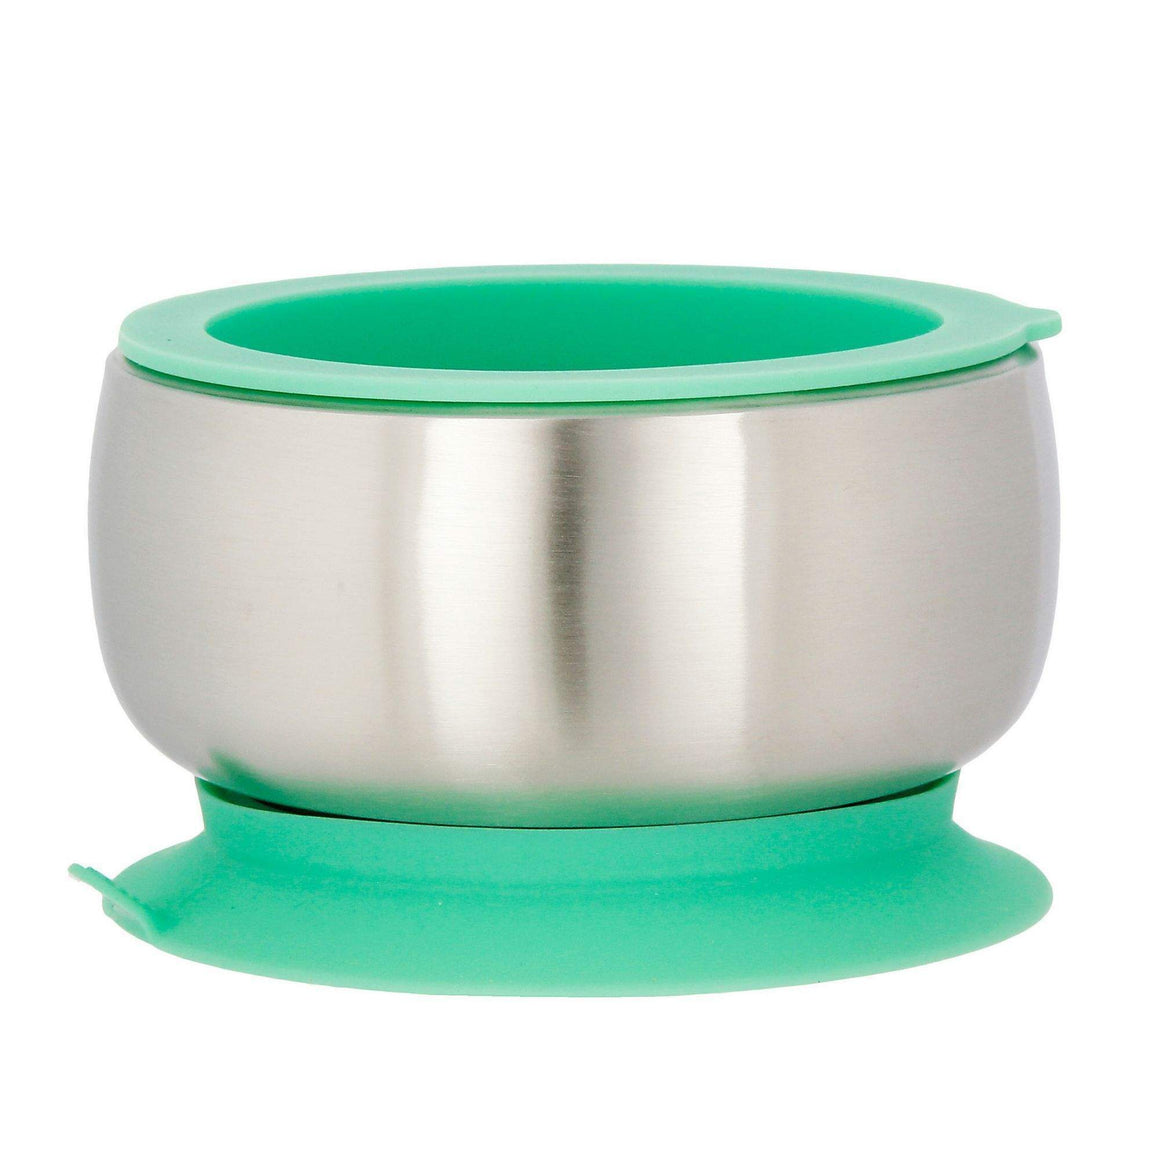 Avanchy Stainless Steel Suction Baby Bowl + Air Tight Lid - Green  (不锈鋼碗+蓋-綠色)